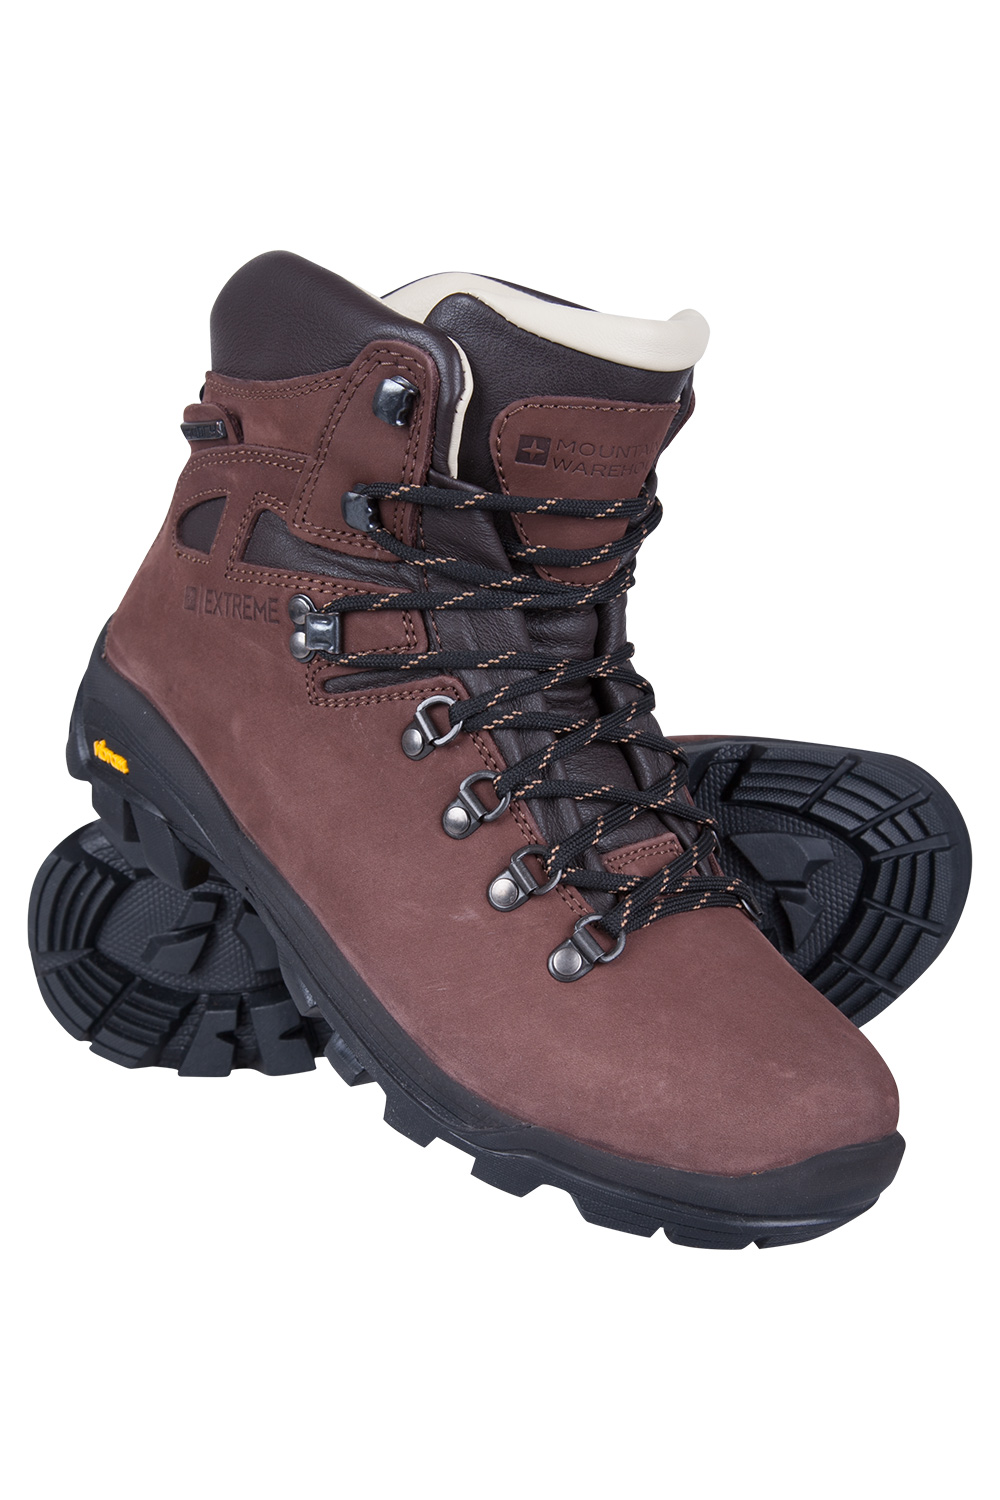 Mountain Warehouse Walking Boots Range f502a11c4f